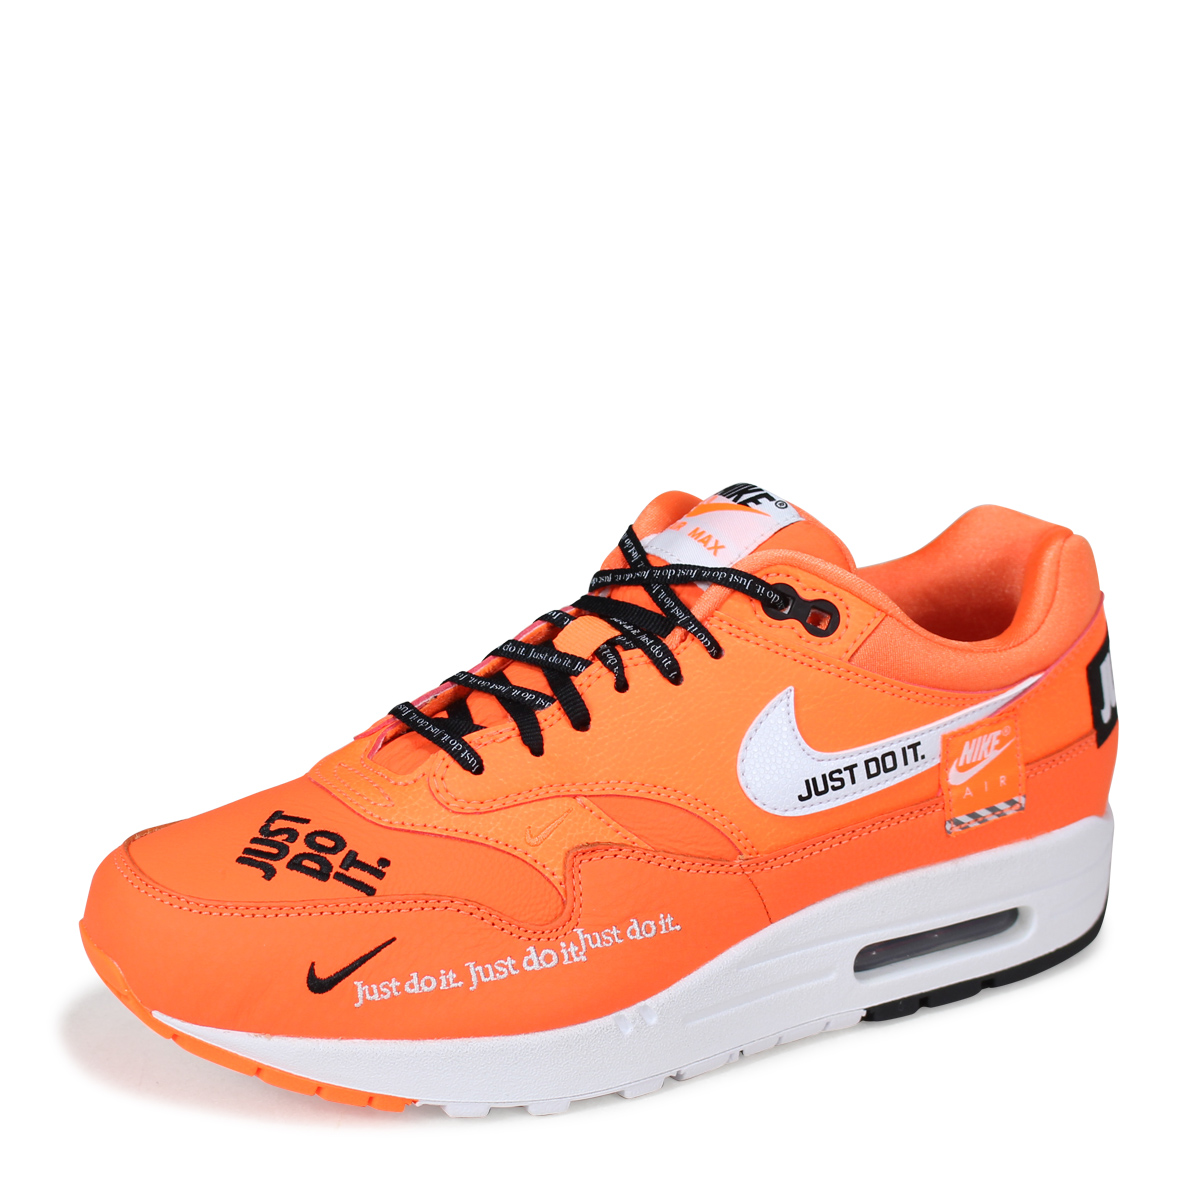 Nike Air Max 1 LX in orange 917691 800 | everysize